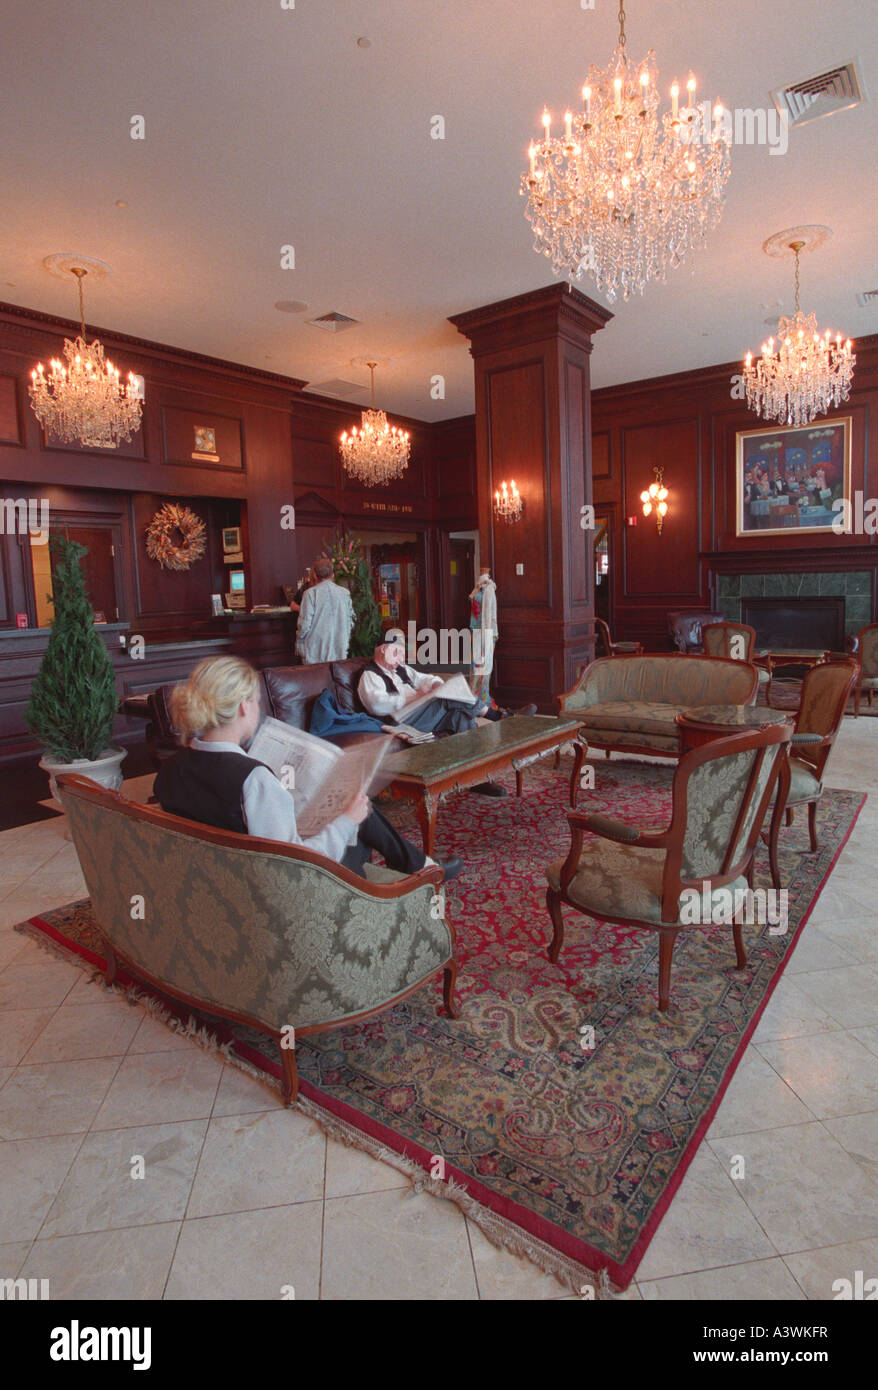 GUESTS AT THE LANDMARK INN IN DOWNTOWN MARQUETTE MICHIGAN RELAX IN THE HOTEL S LOBBY - Stock Image